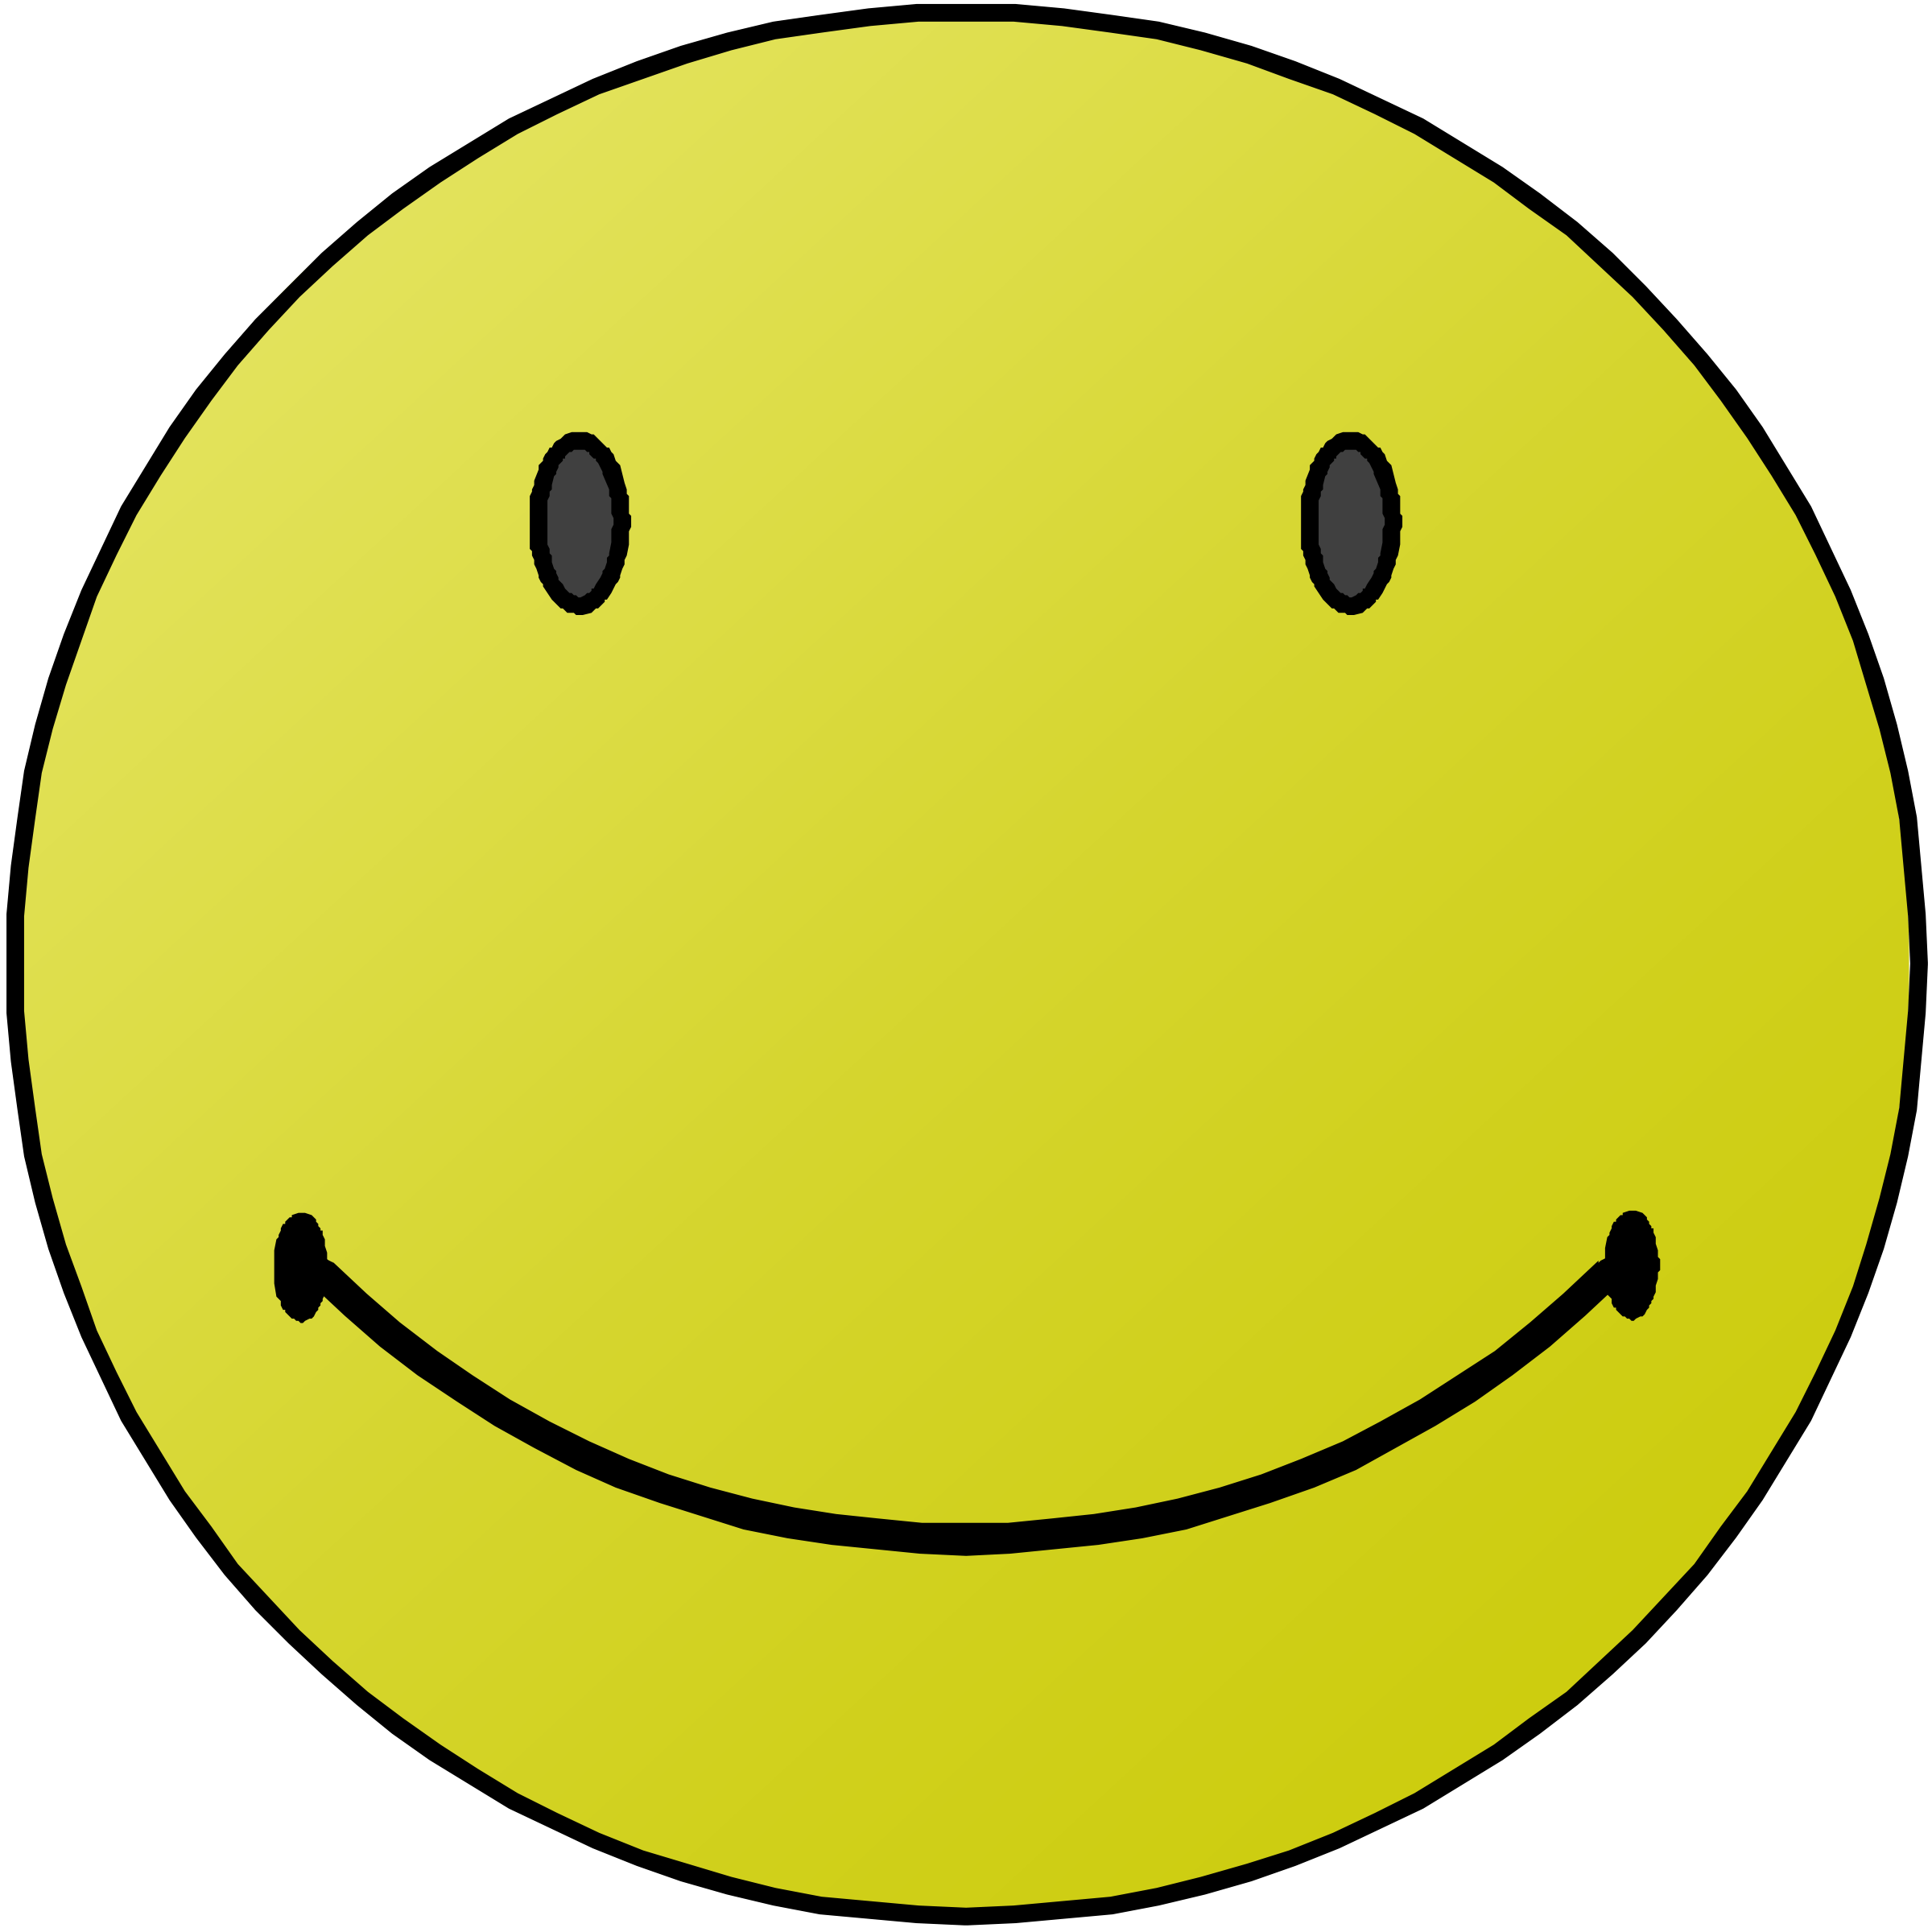 Happy Face Clipart   Clipart Panda   Free Clipart Images